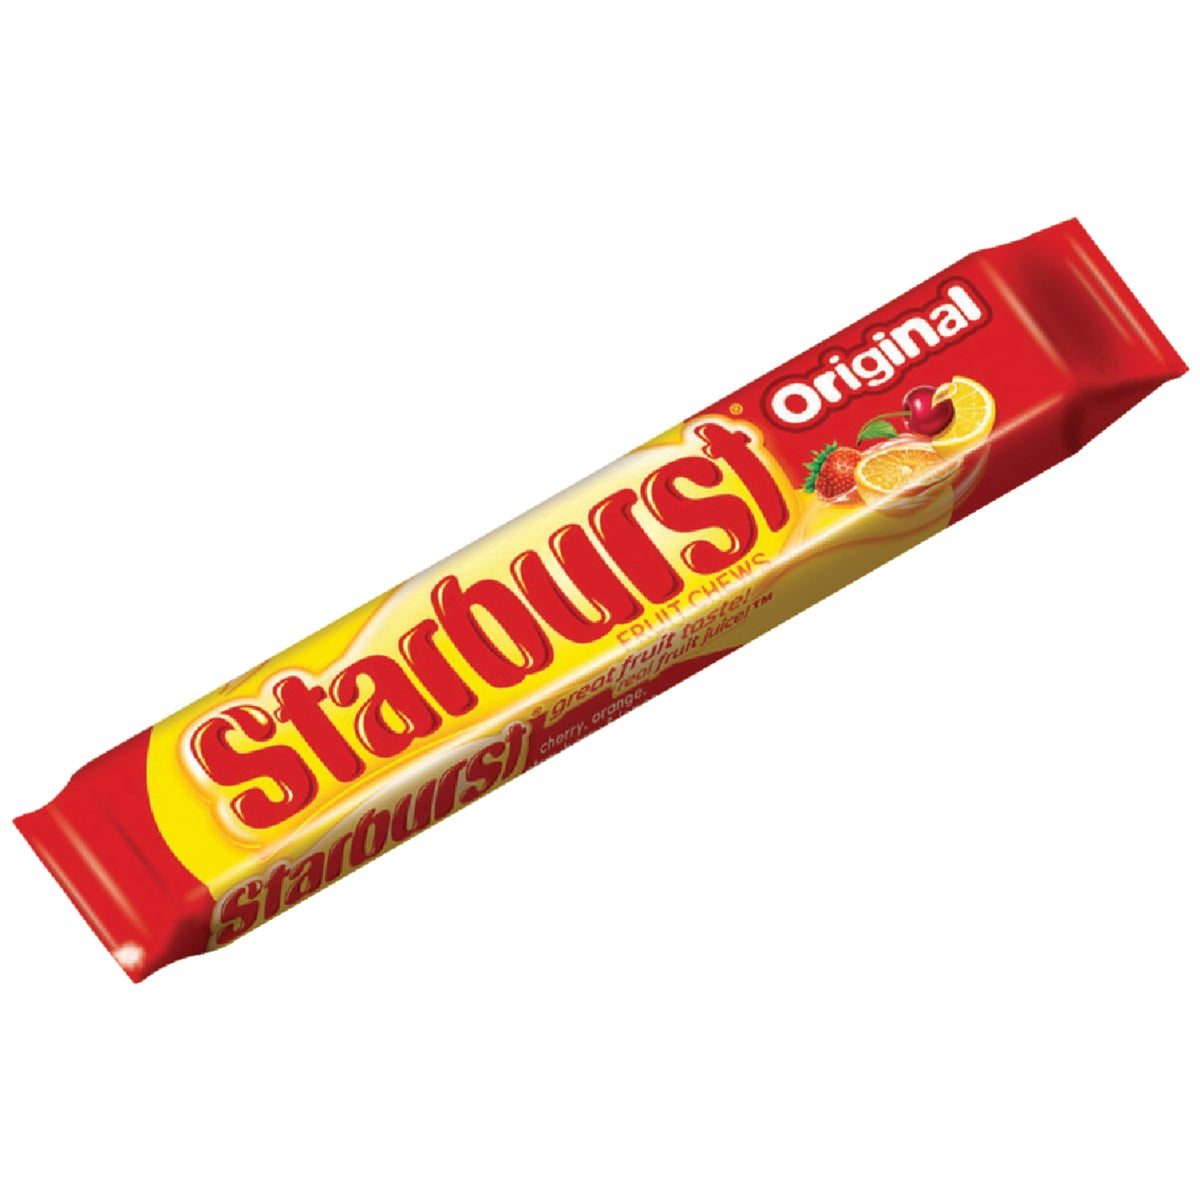 ORIGINAL STARBURST - 1151 by Liberty Distribution